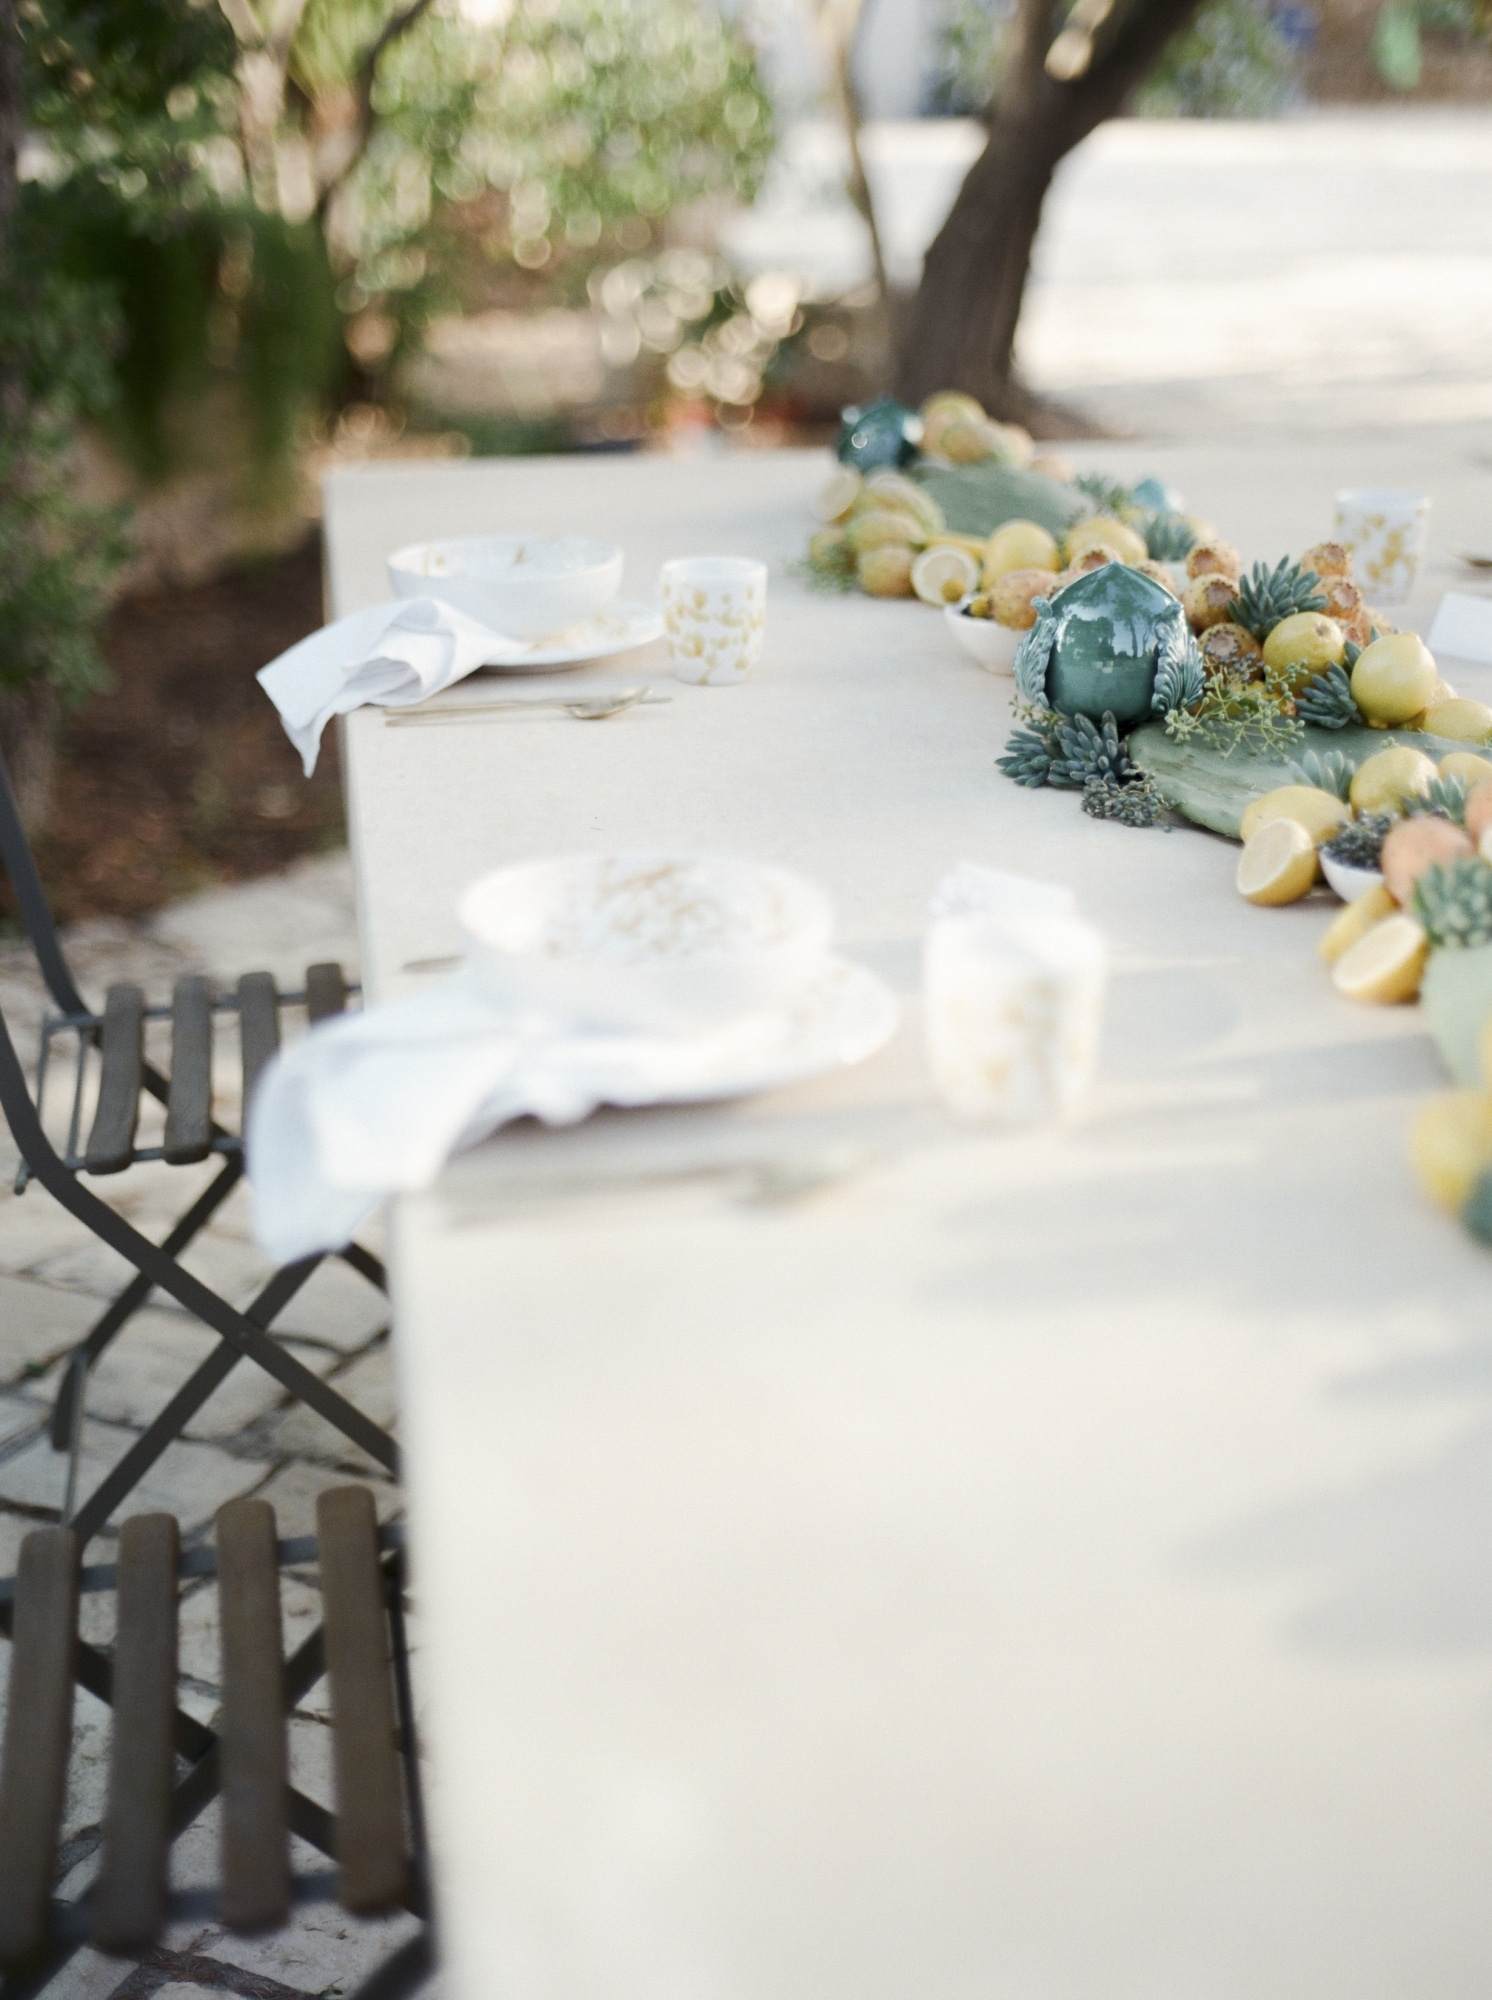 yellow florals with white table setting in wedding in apulia italy